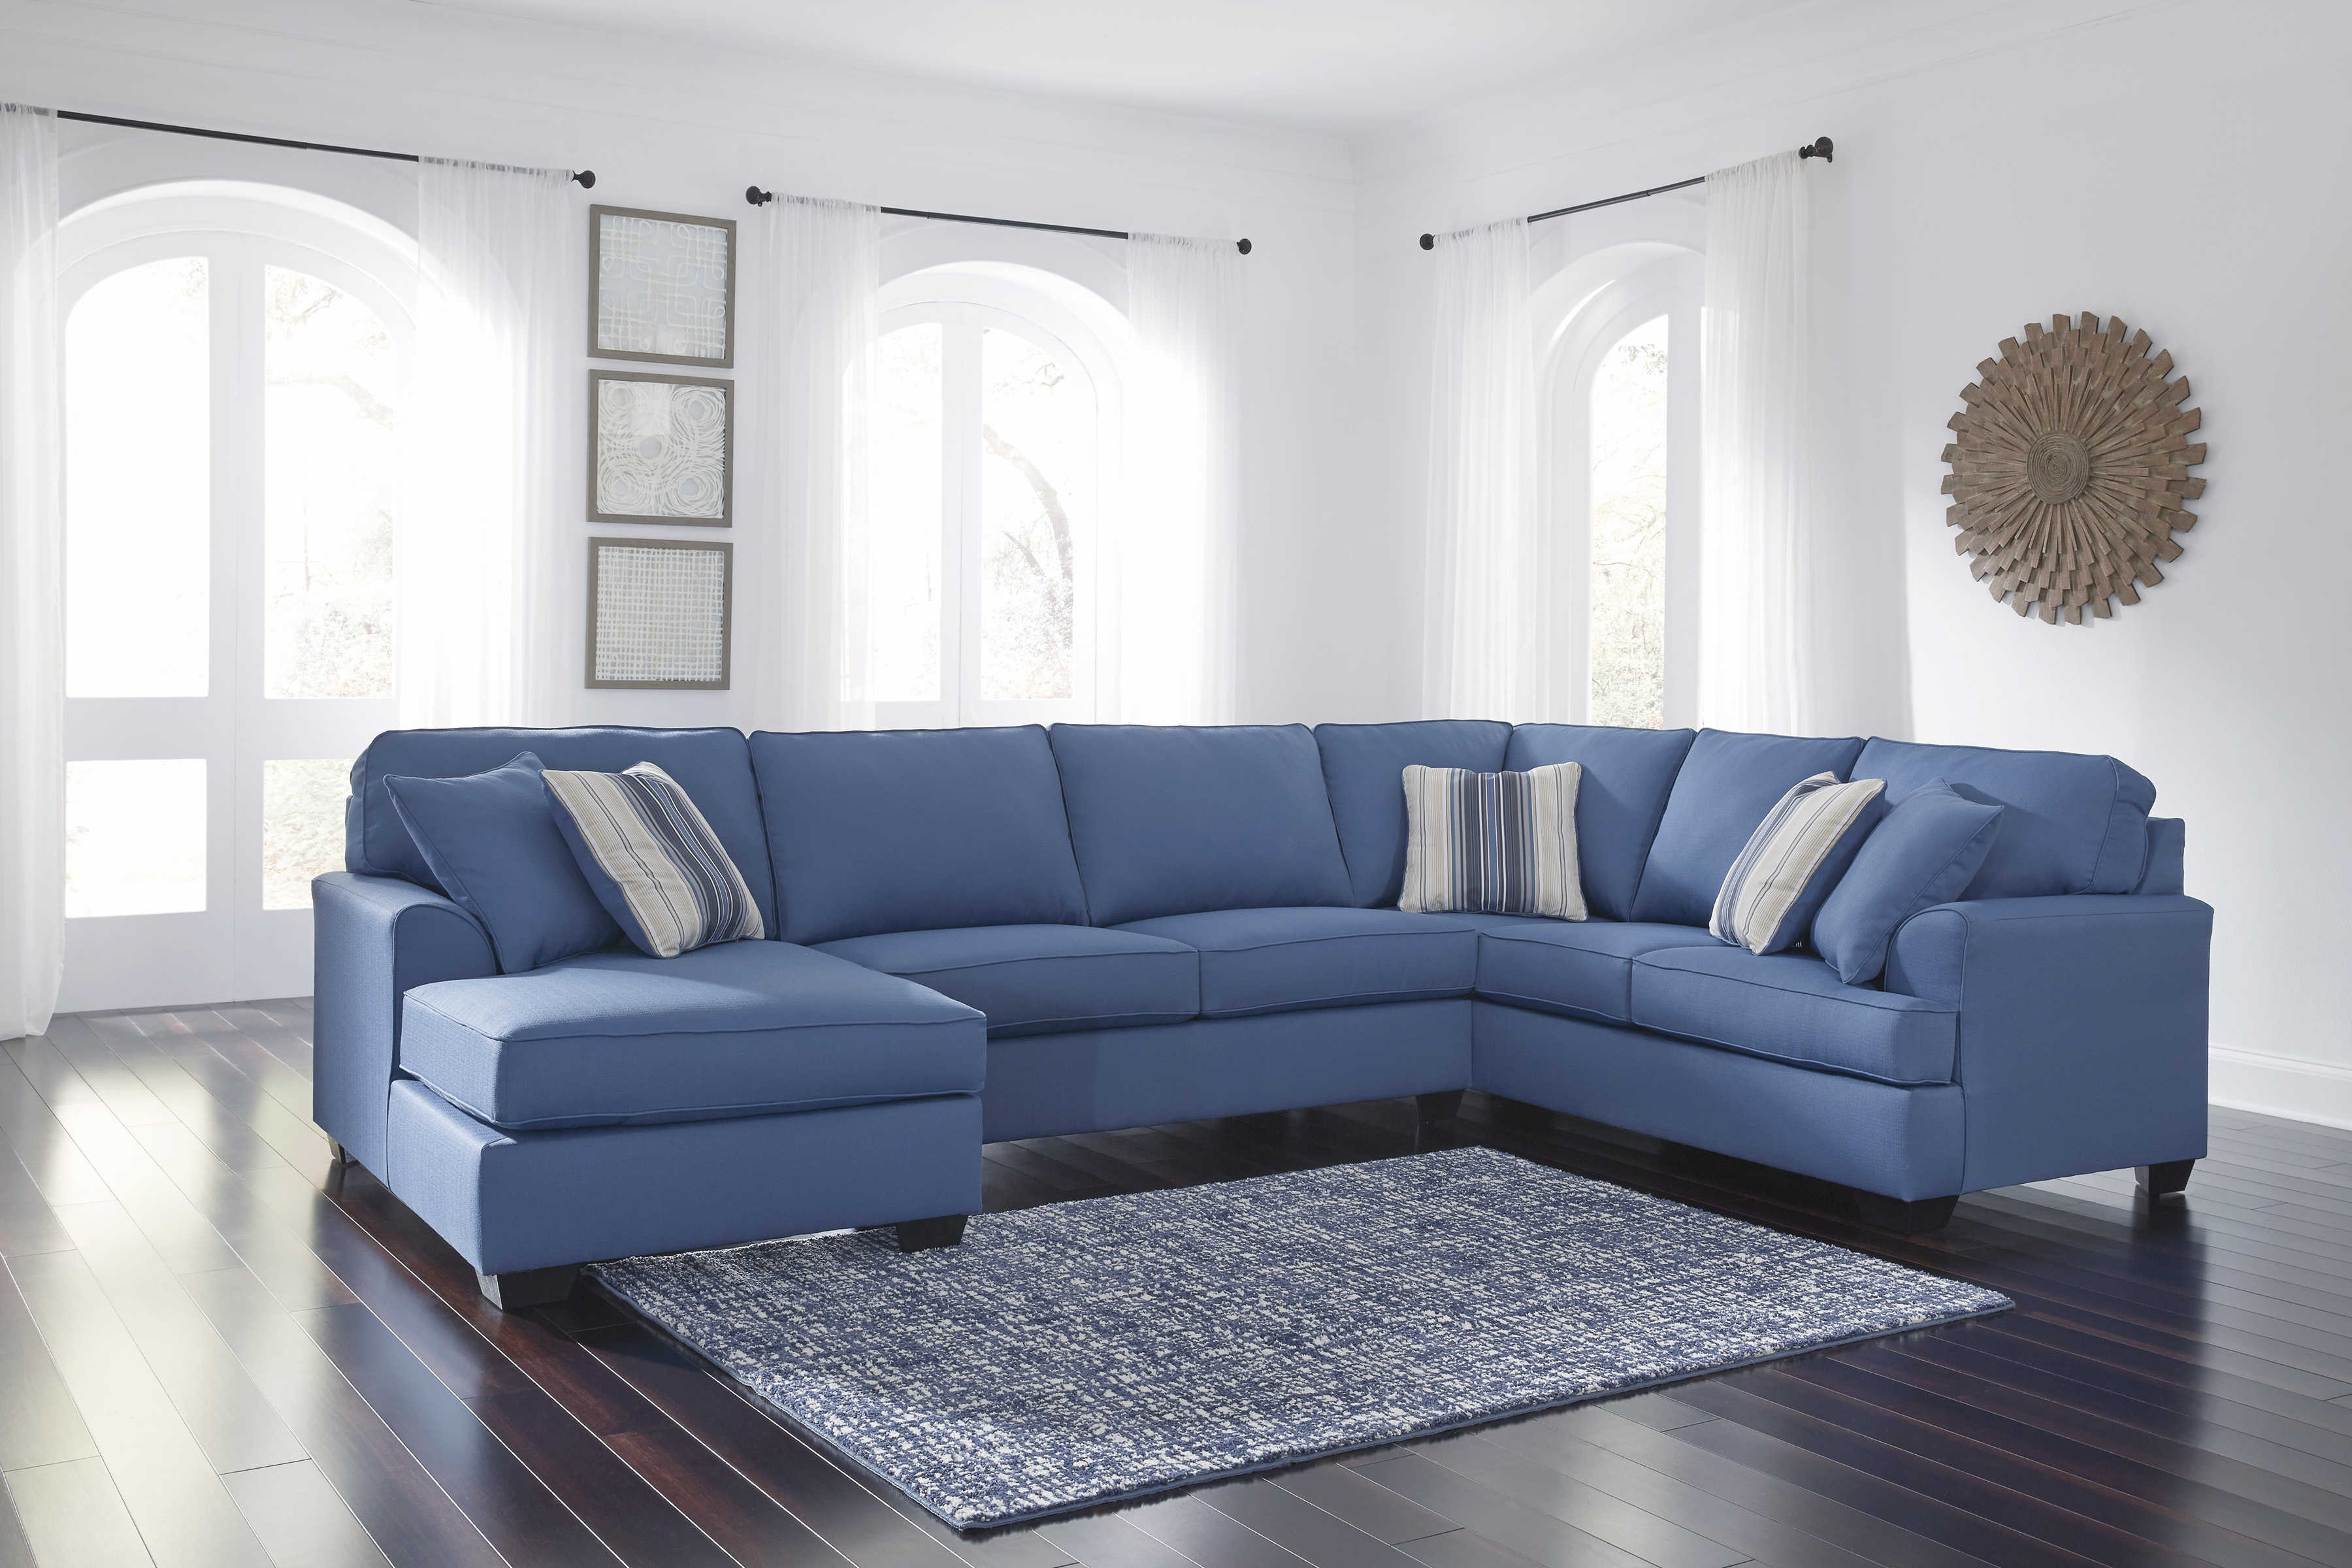 Ashley Furniture Brioni Nuvella Blue Laf Chaise Sectional The Classy Home